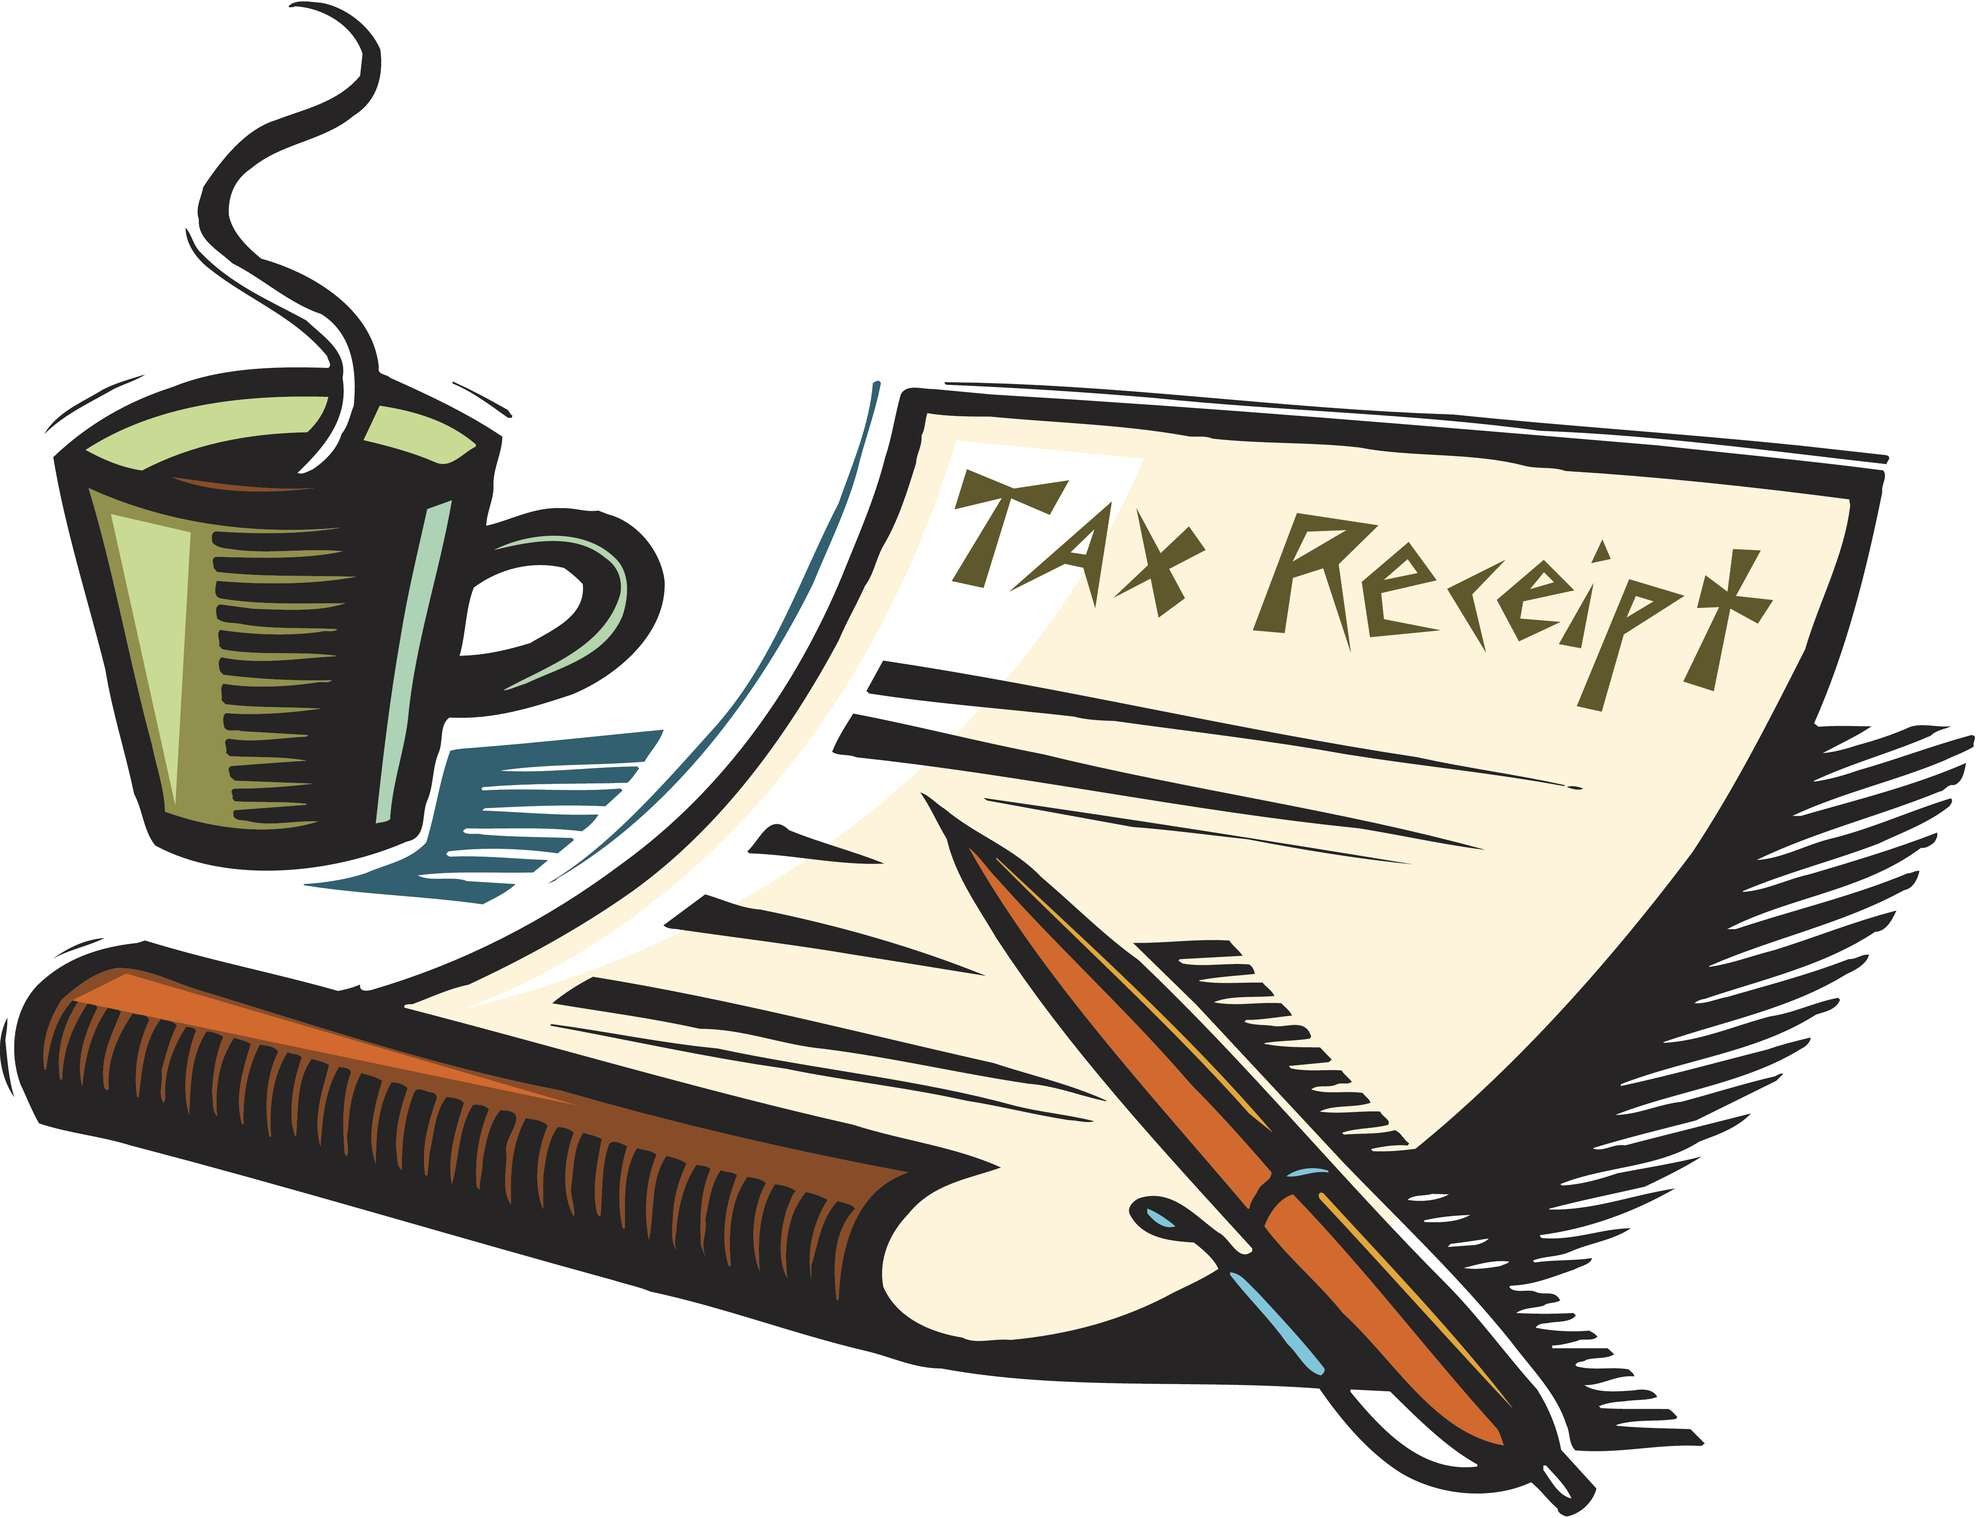 Illustration of a tax receipt for a charitable donation